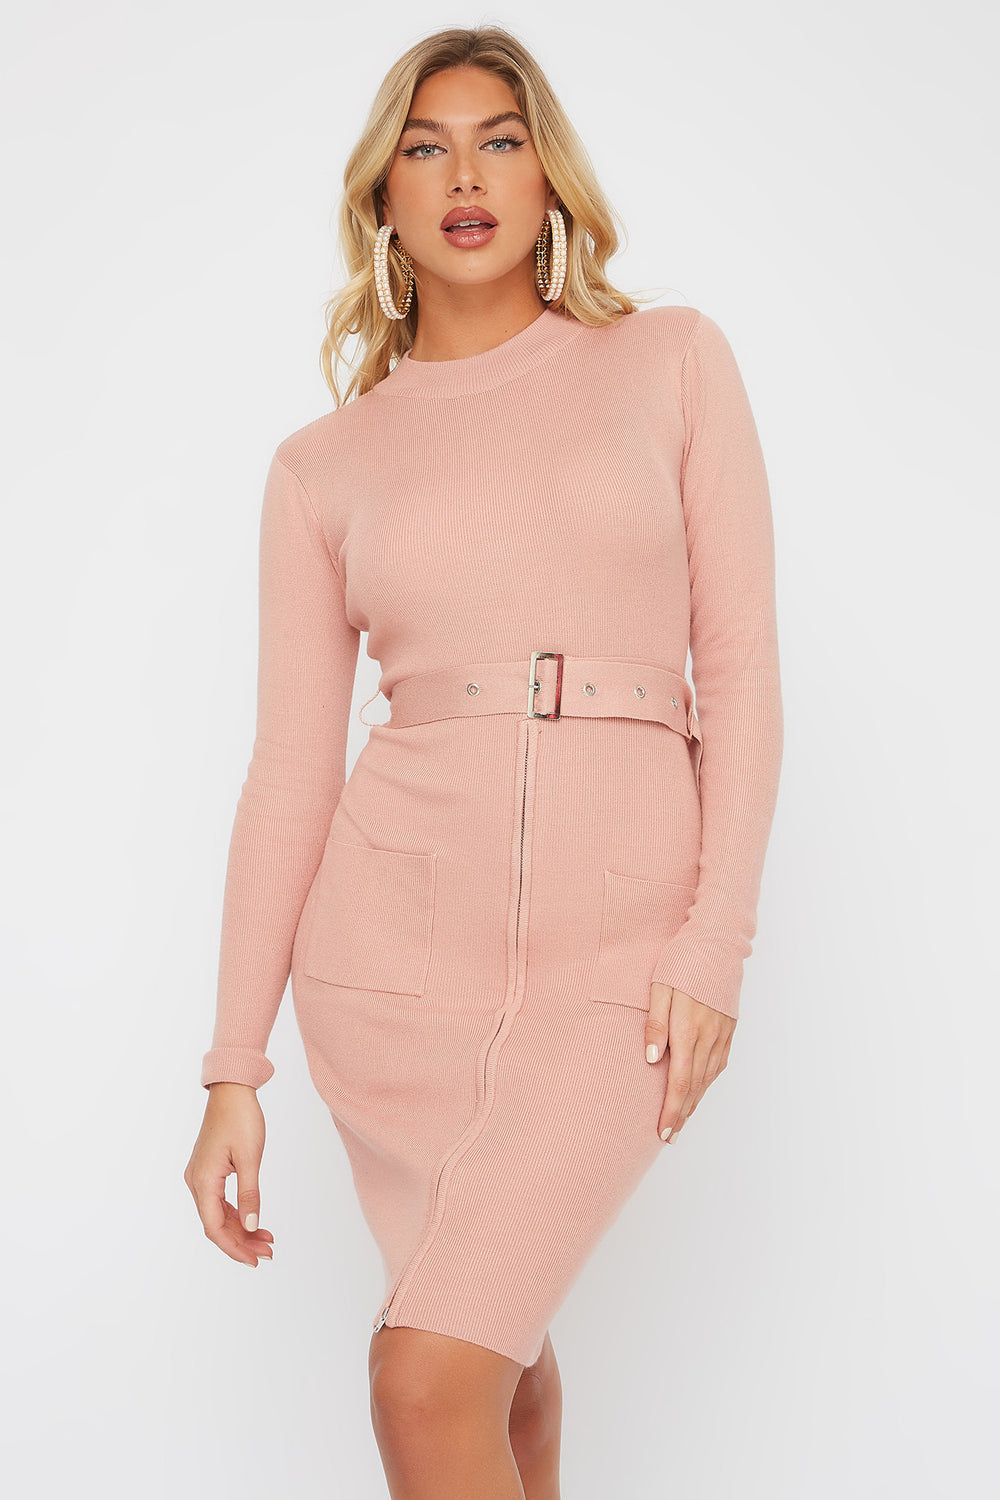 Half-Zip Pocket Belted Long Sleeve Sweater Dress Pink